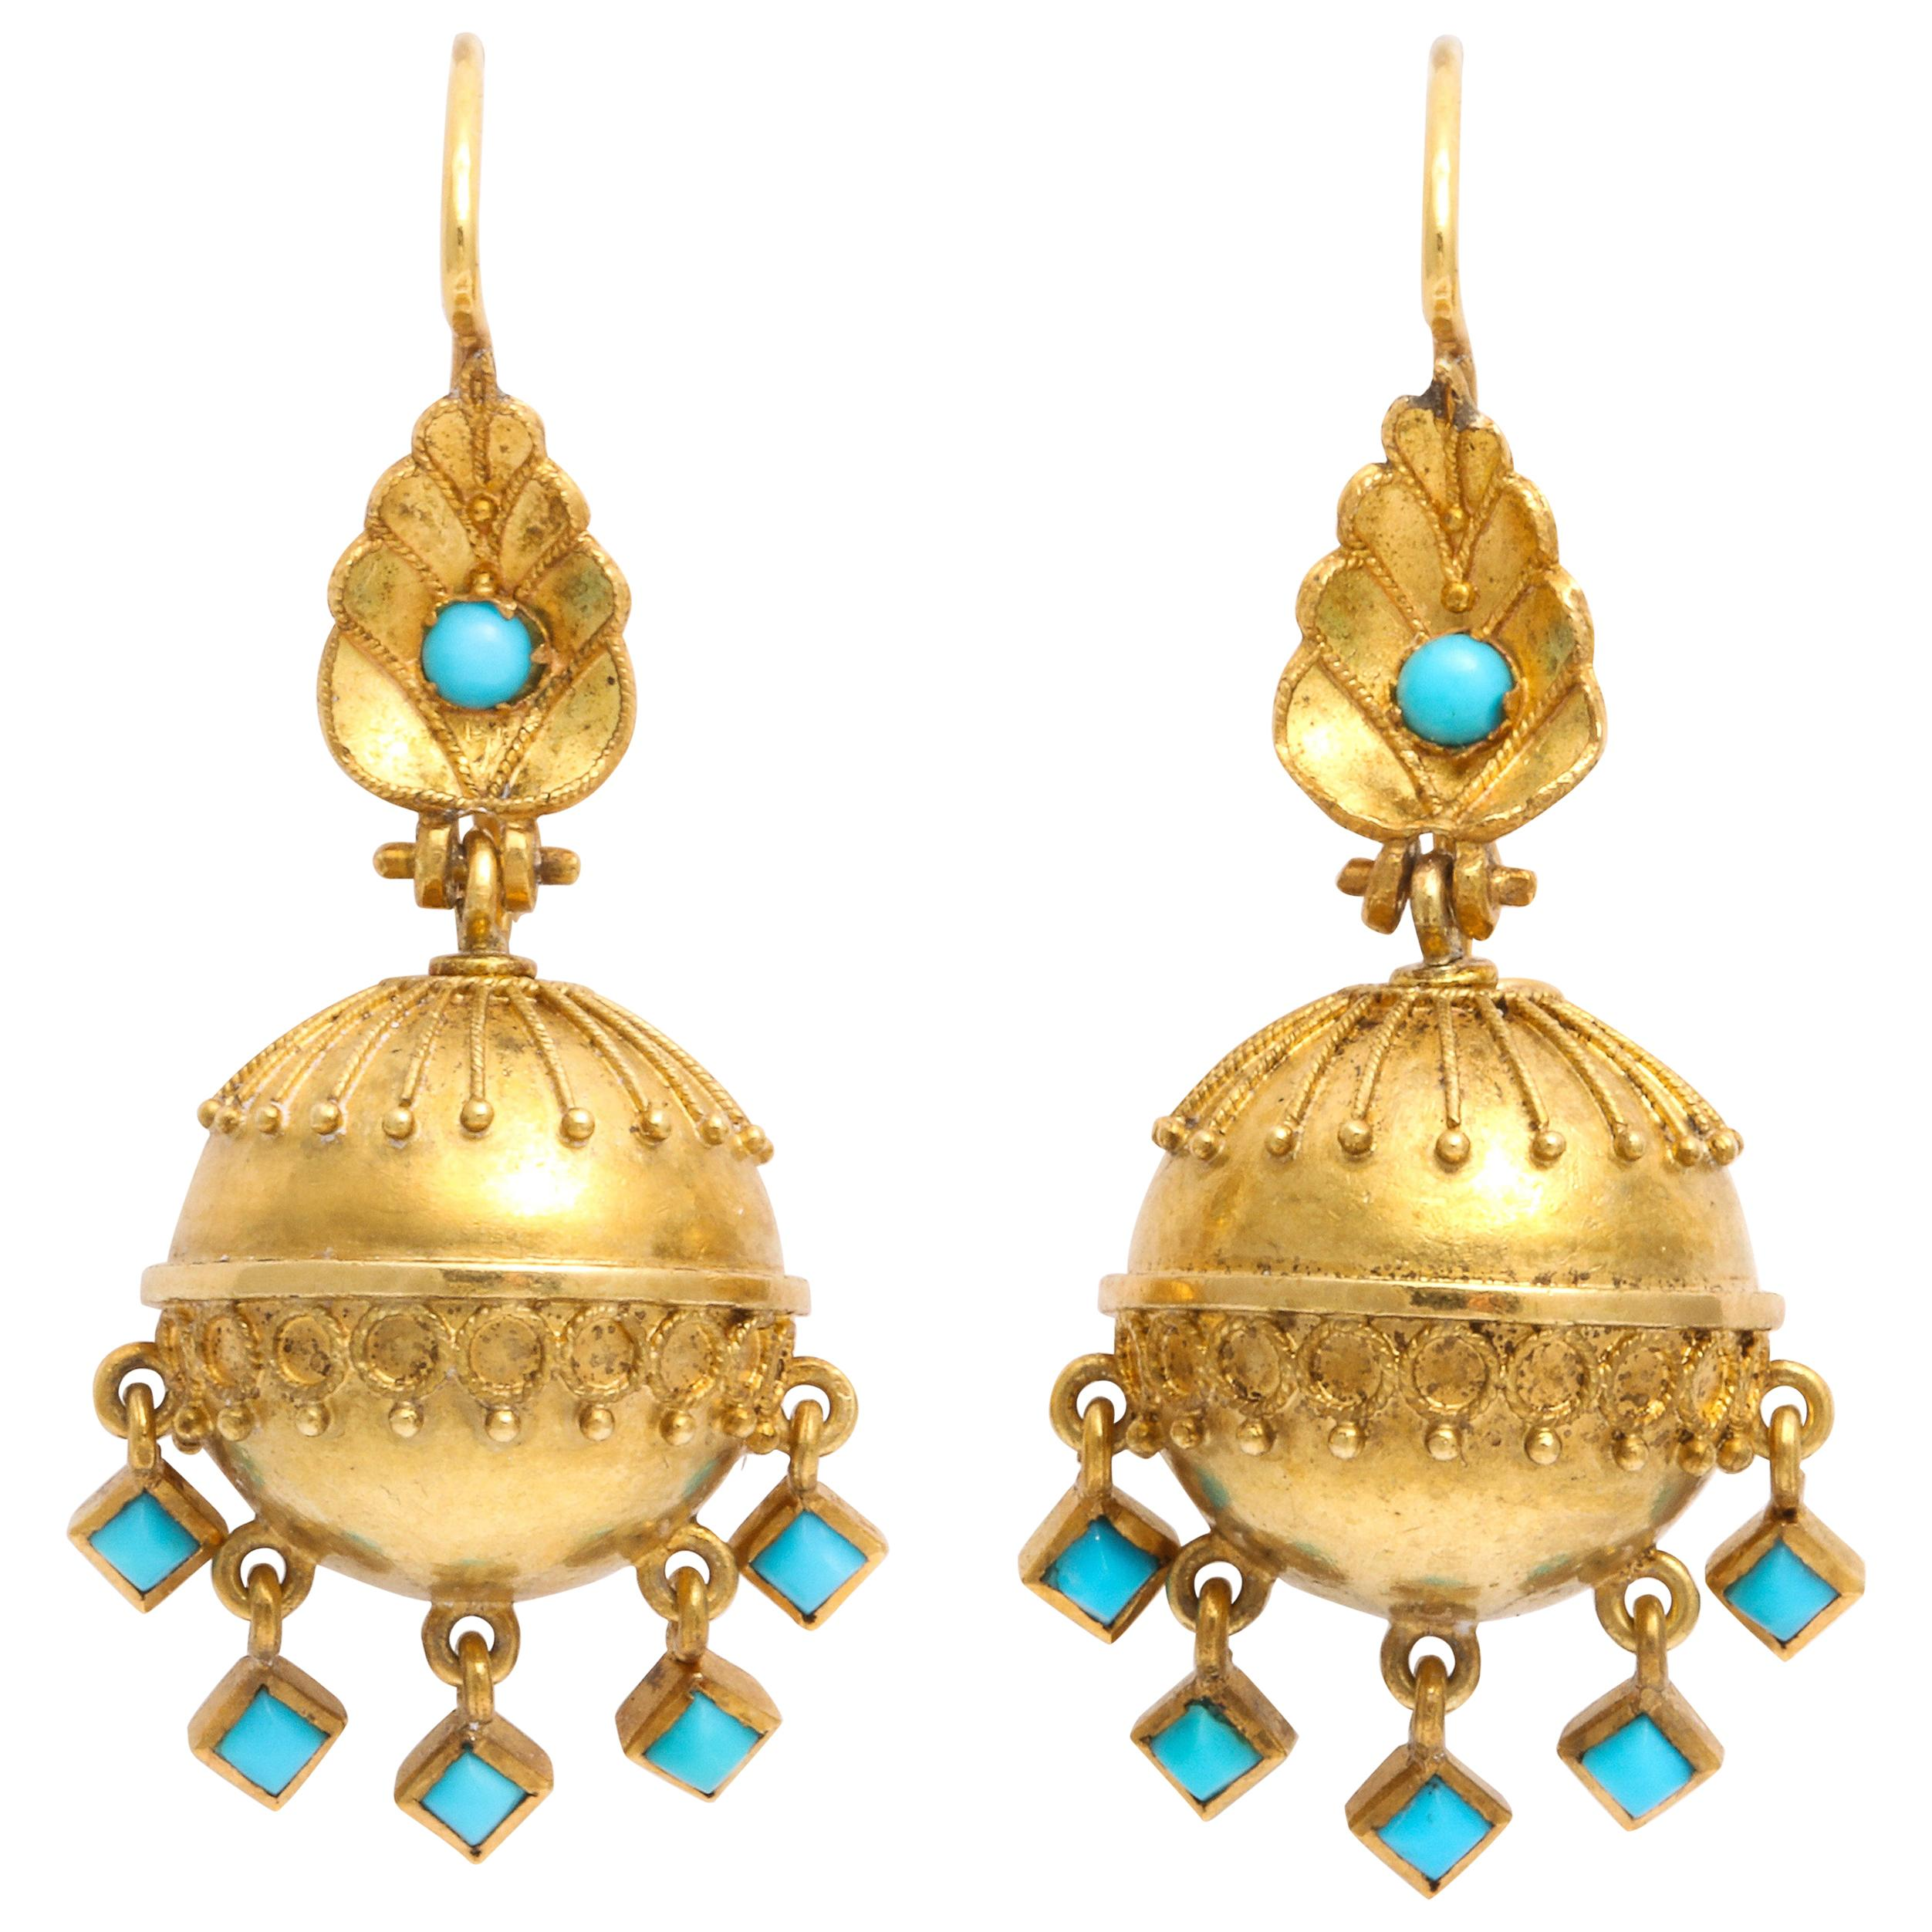 Antique Victorian Etruscan Revival Drop Earrings